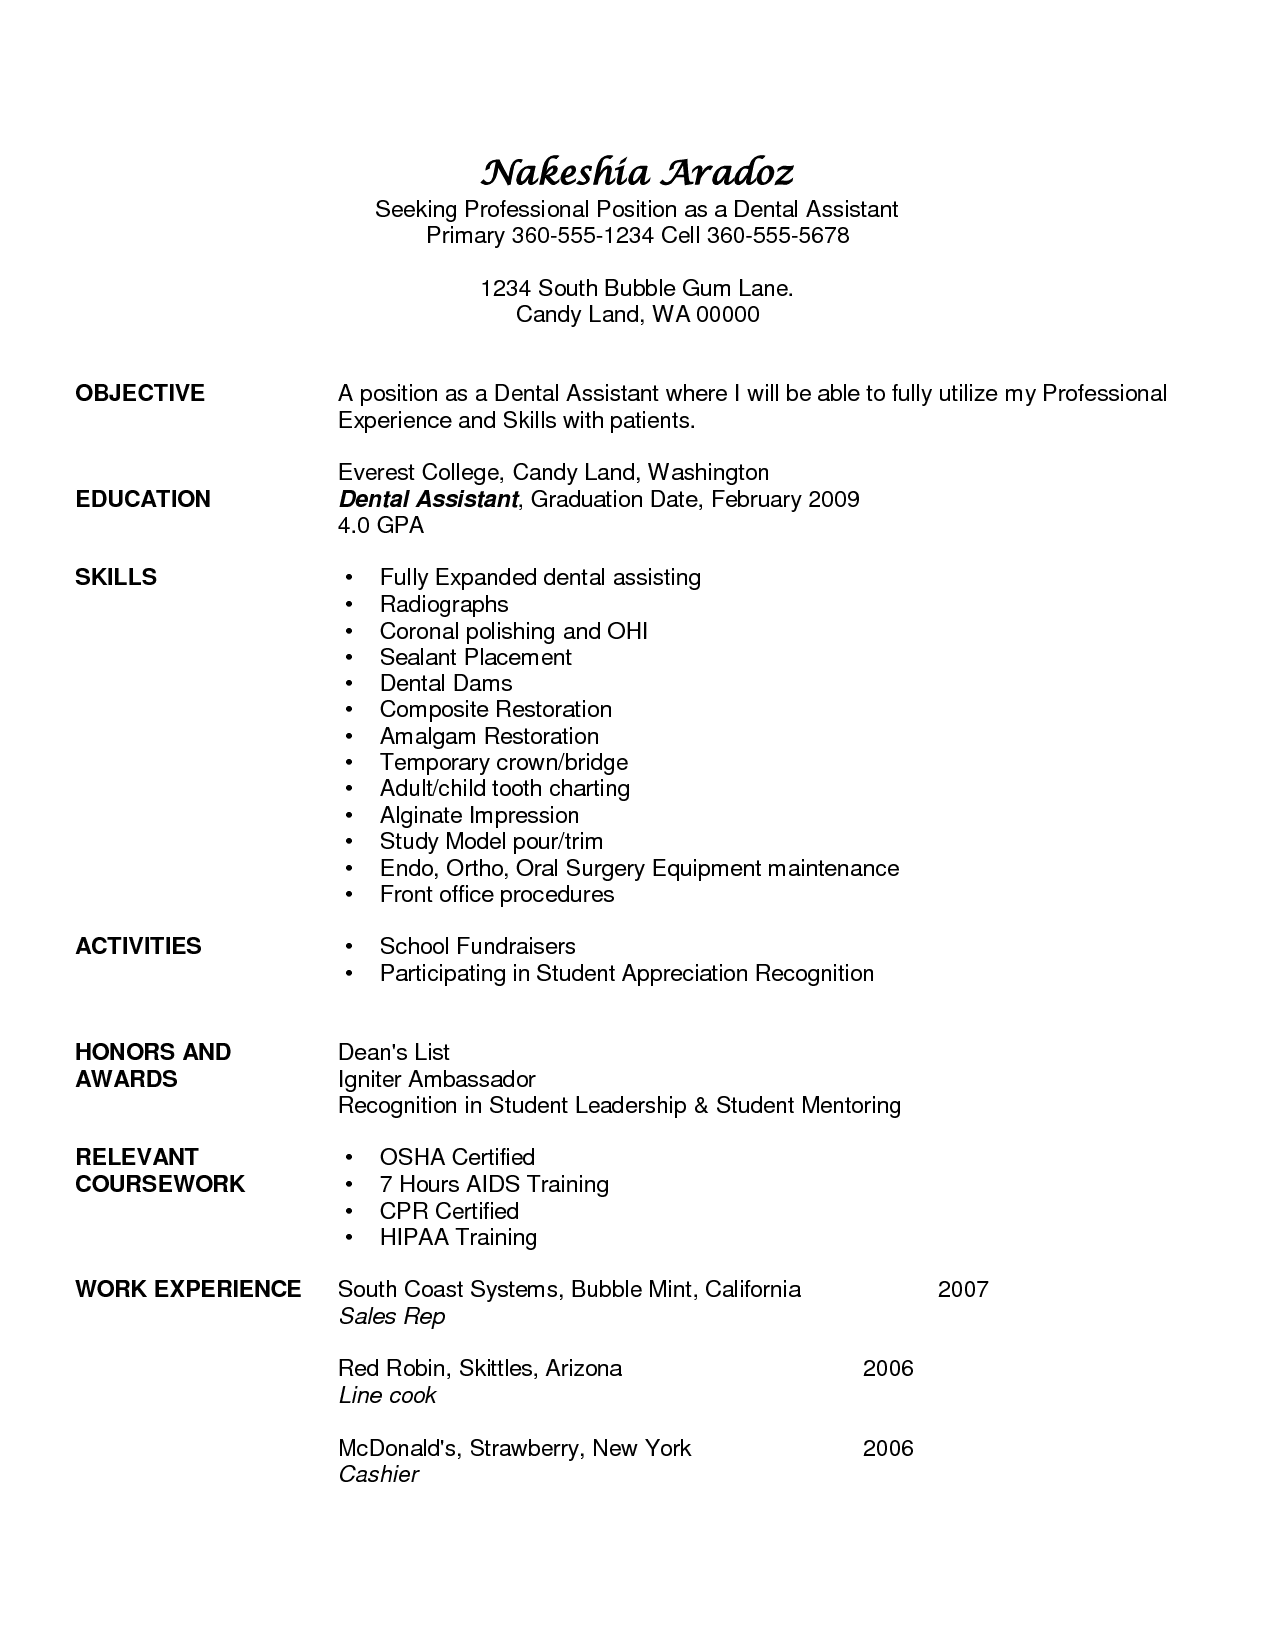 Dental Assistant Resume Skills  Resumes For Dental Assistants